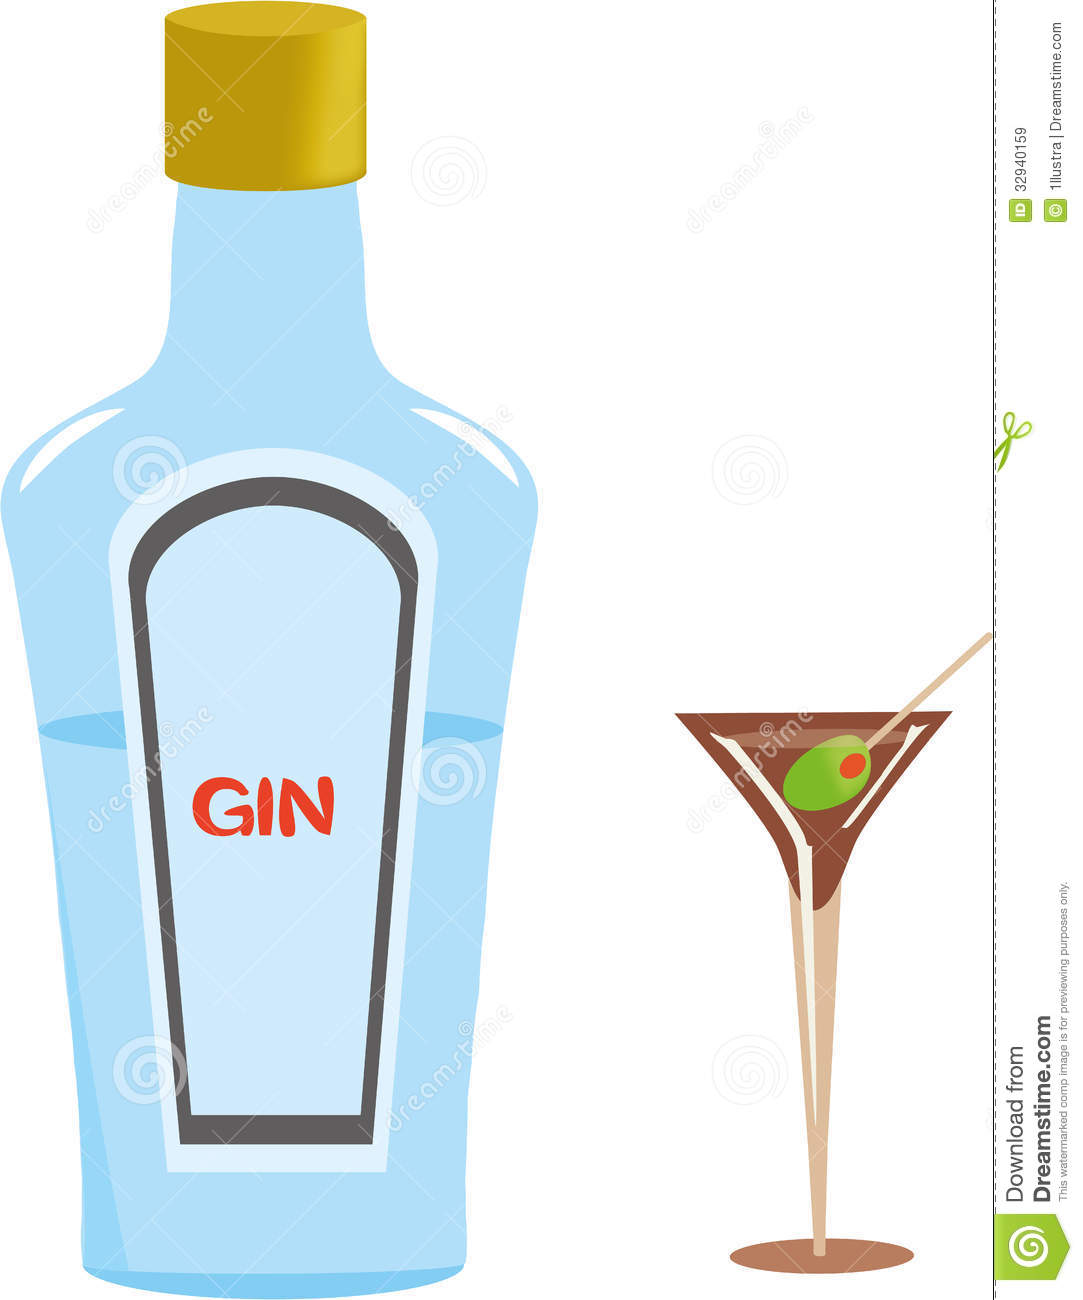 Gin Bottle And Martini Glass Royalty Free Stock Images.